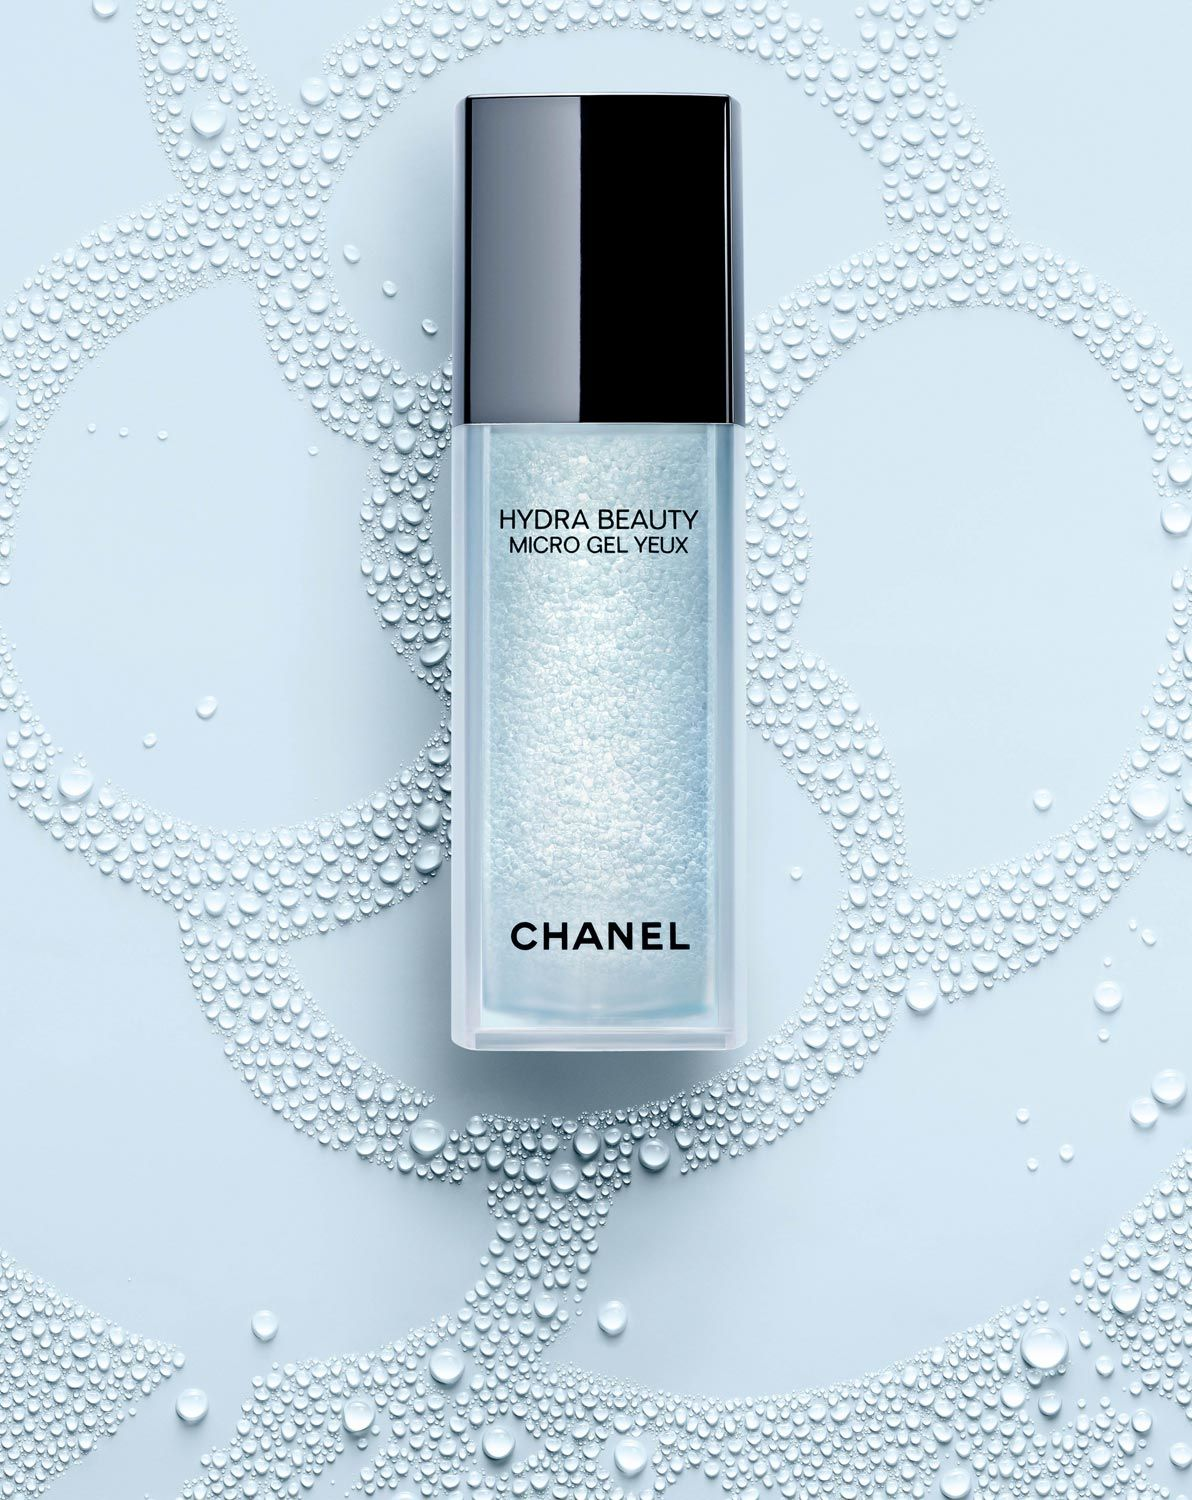 Chanel Chanel Skincare And Moisturizer Online Boutique Beauty Products Photography Beauty Cosmetics Design Chanel Hydra Beauty